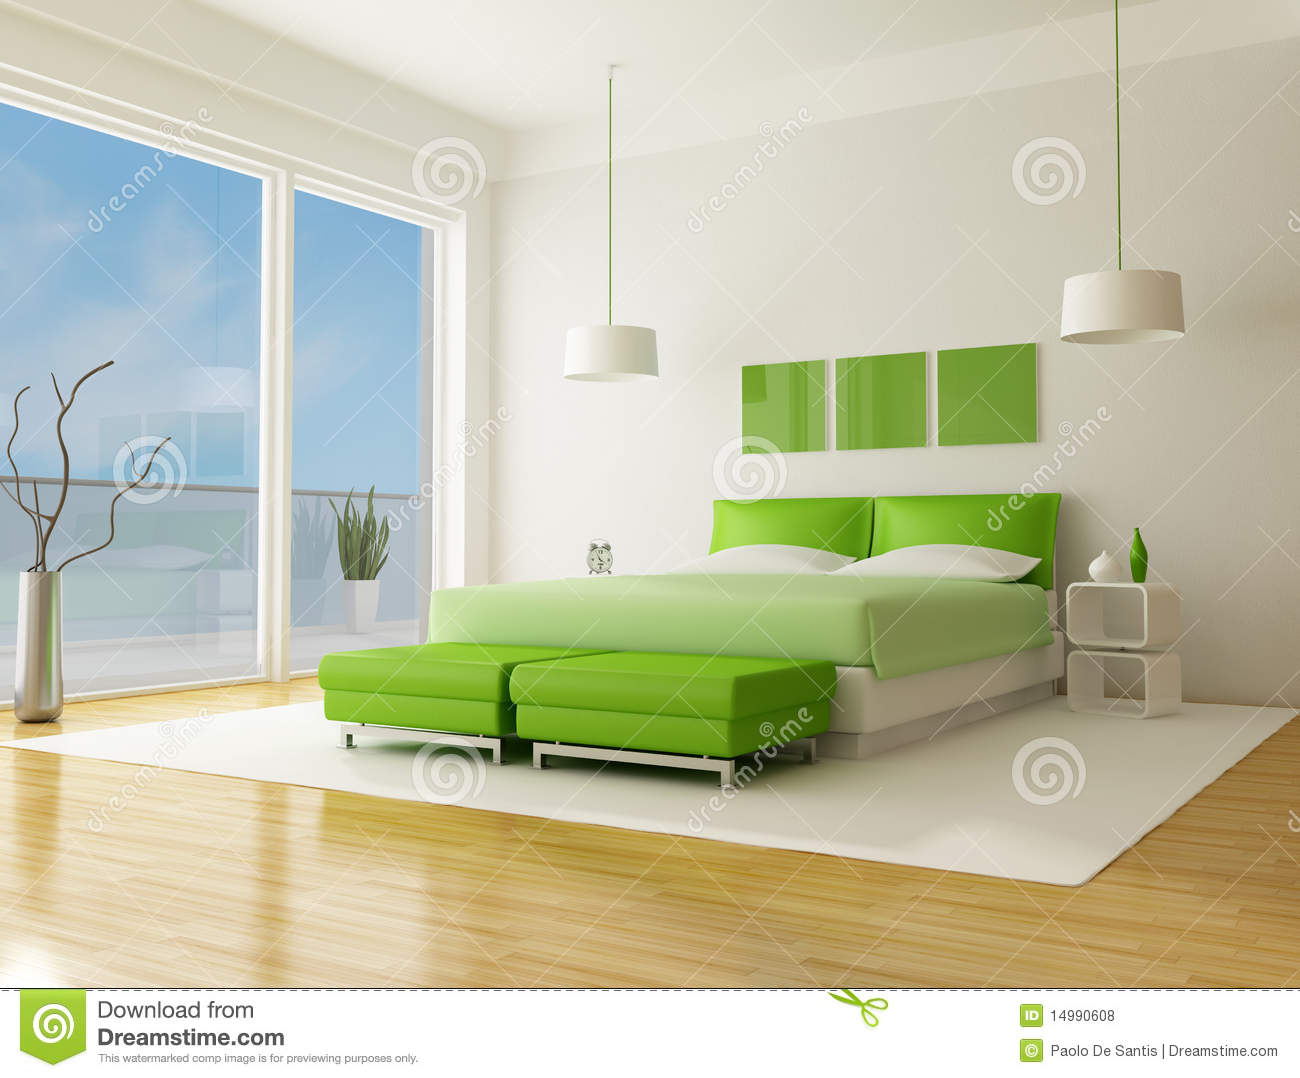 Camera Da Letto Verde Tiffany Camera Da Letto Verde Illustrazione Di Stock Illustrazione Di